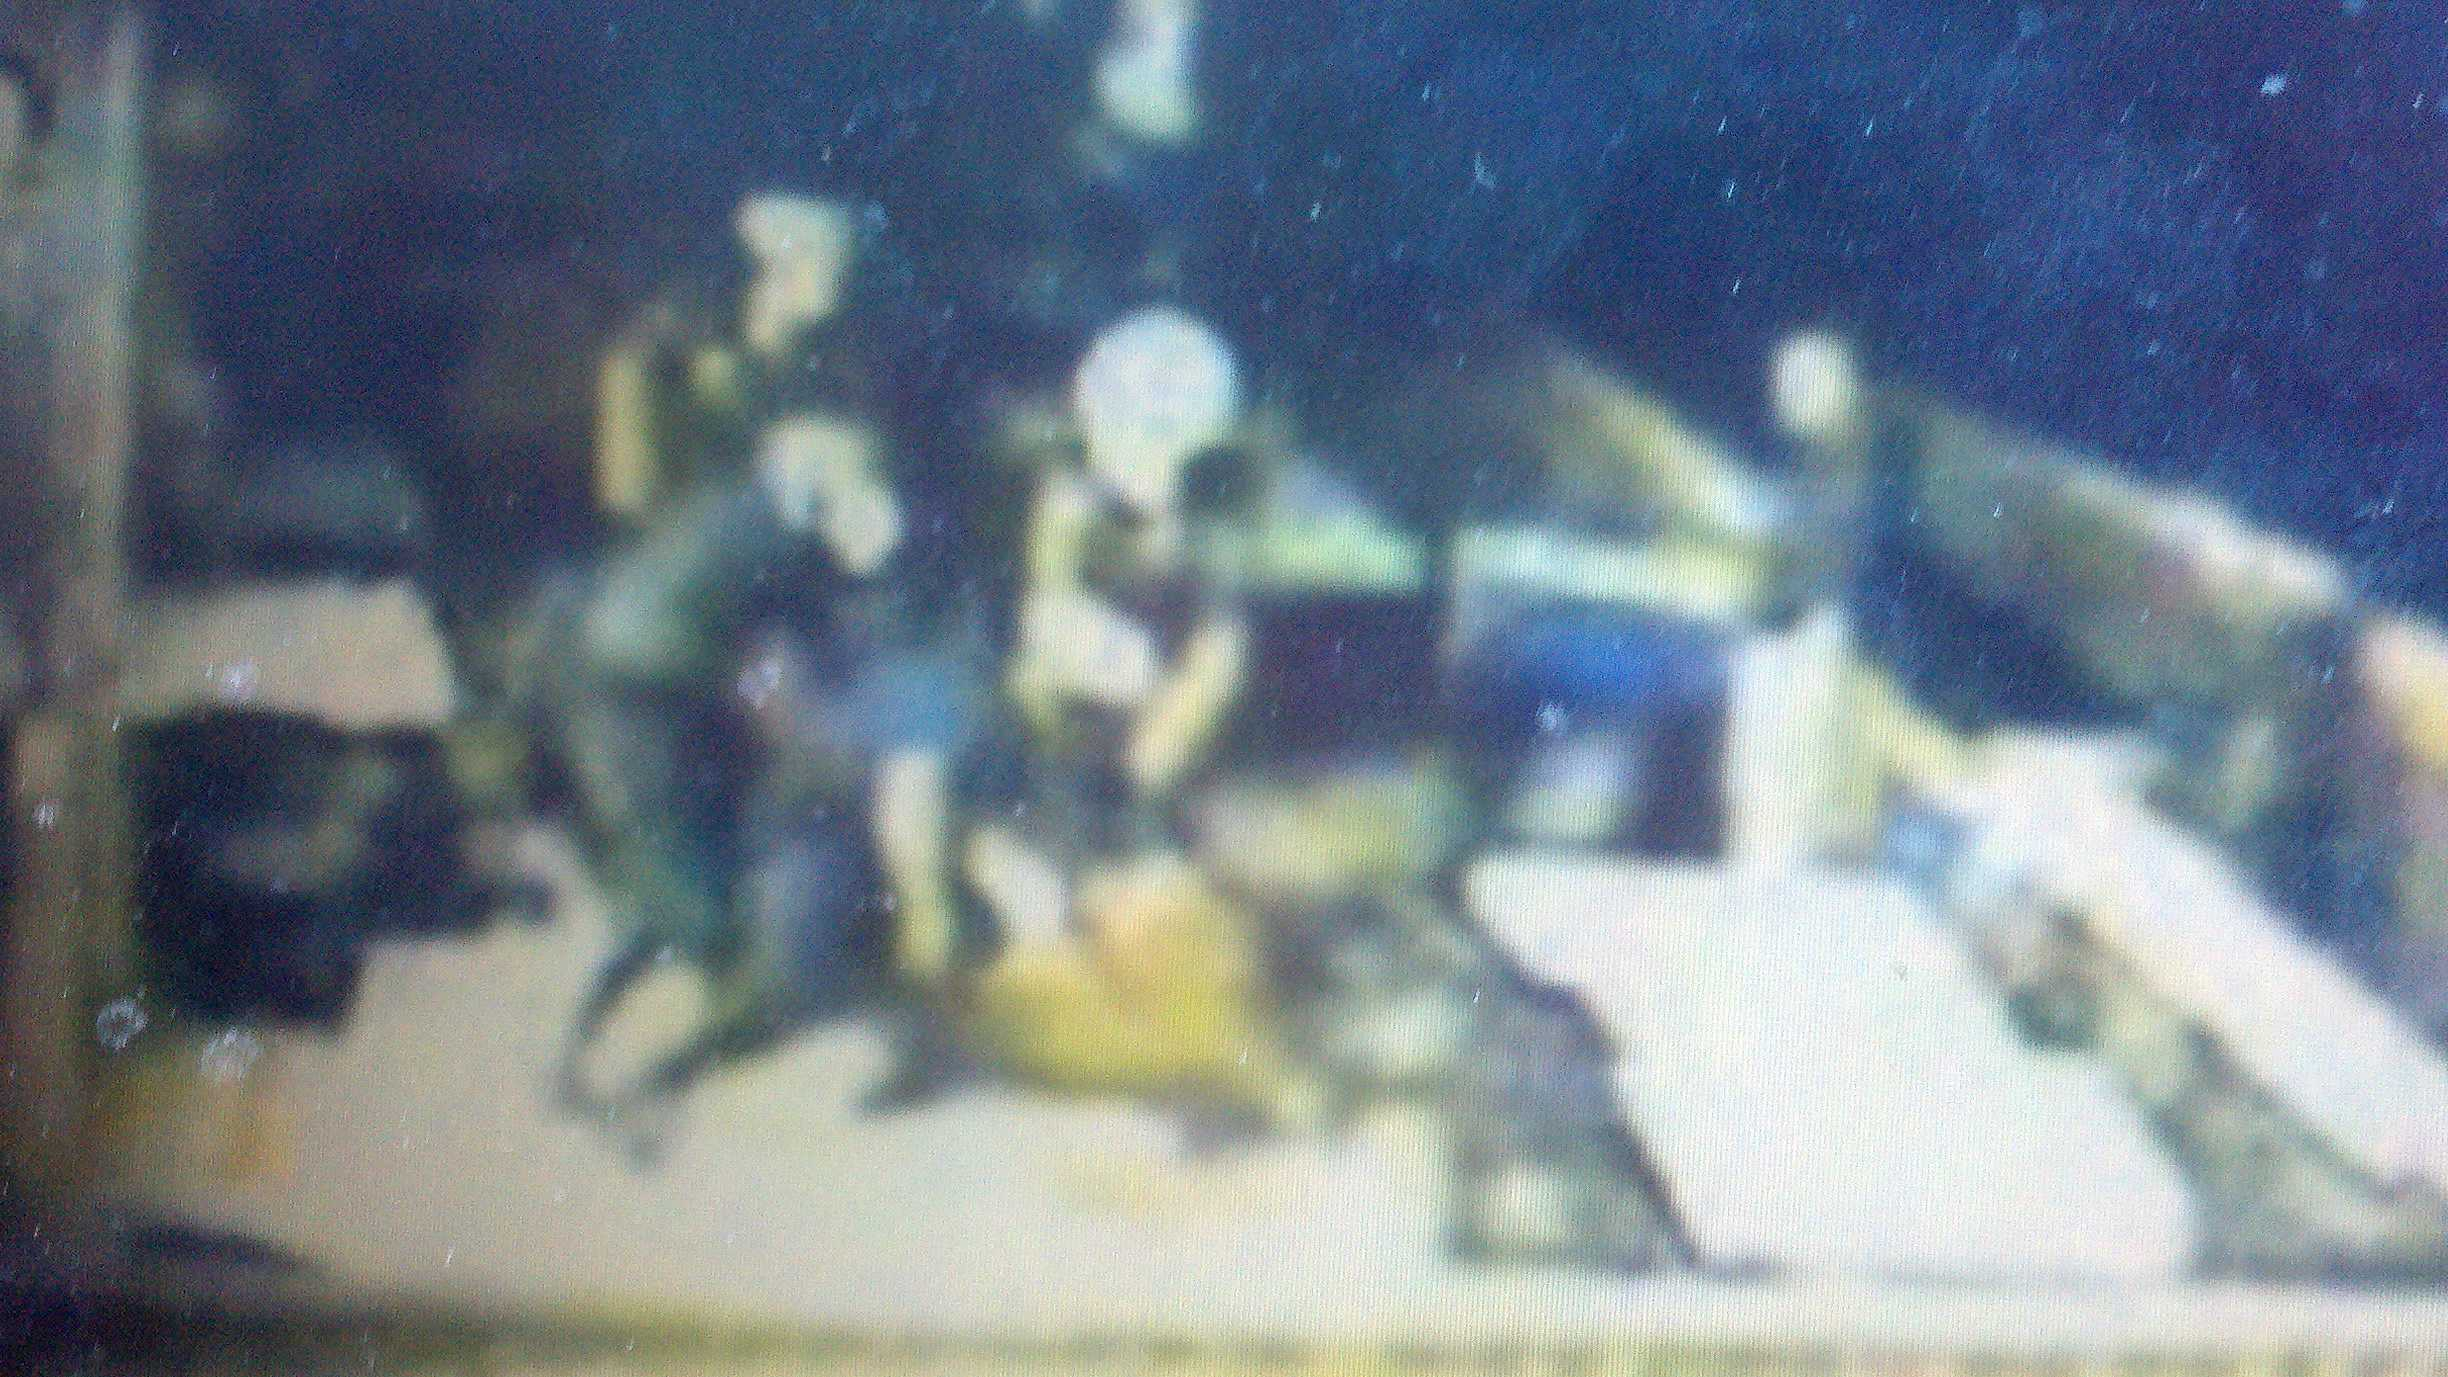 Bar fight video image (2)